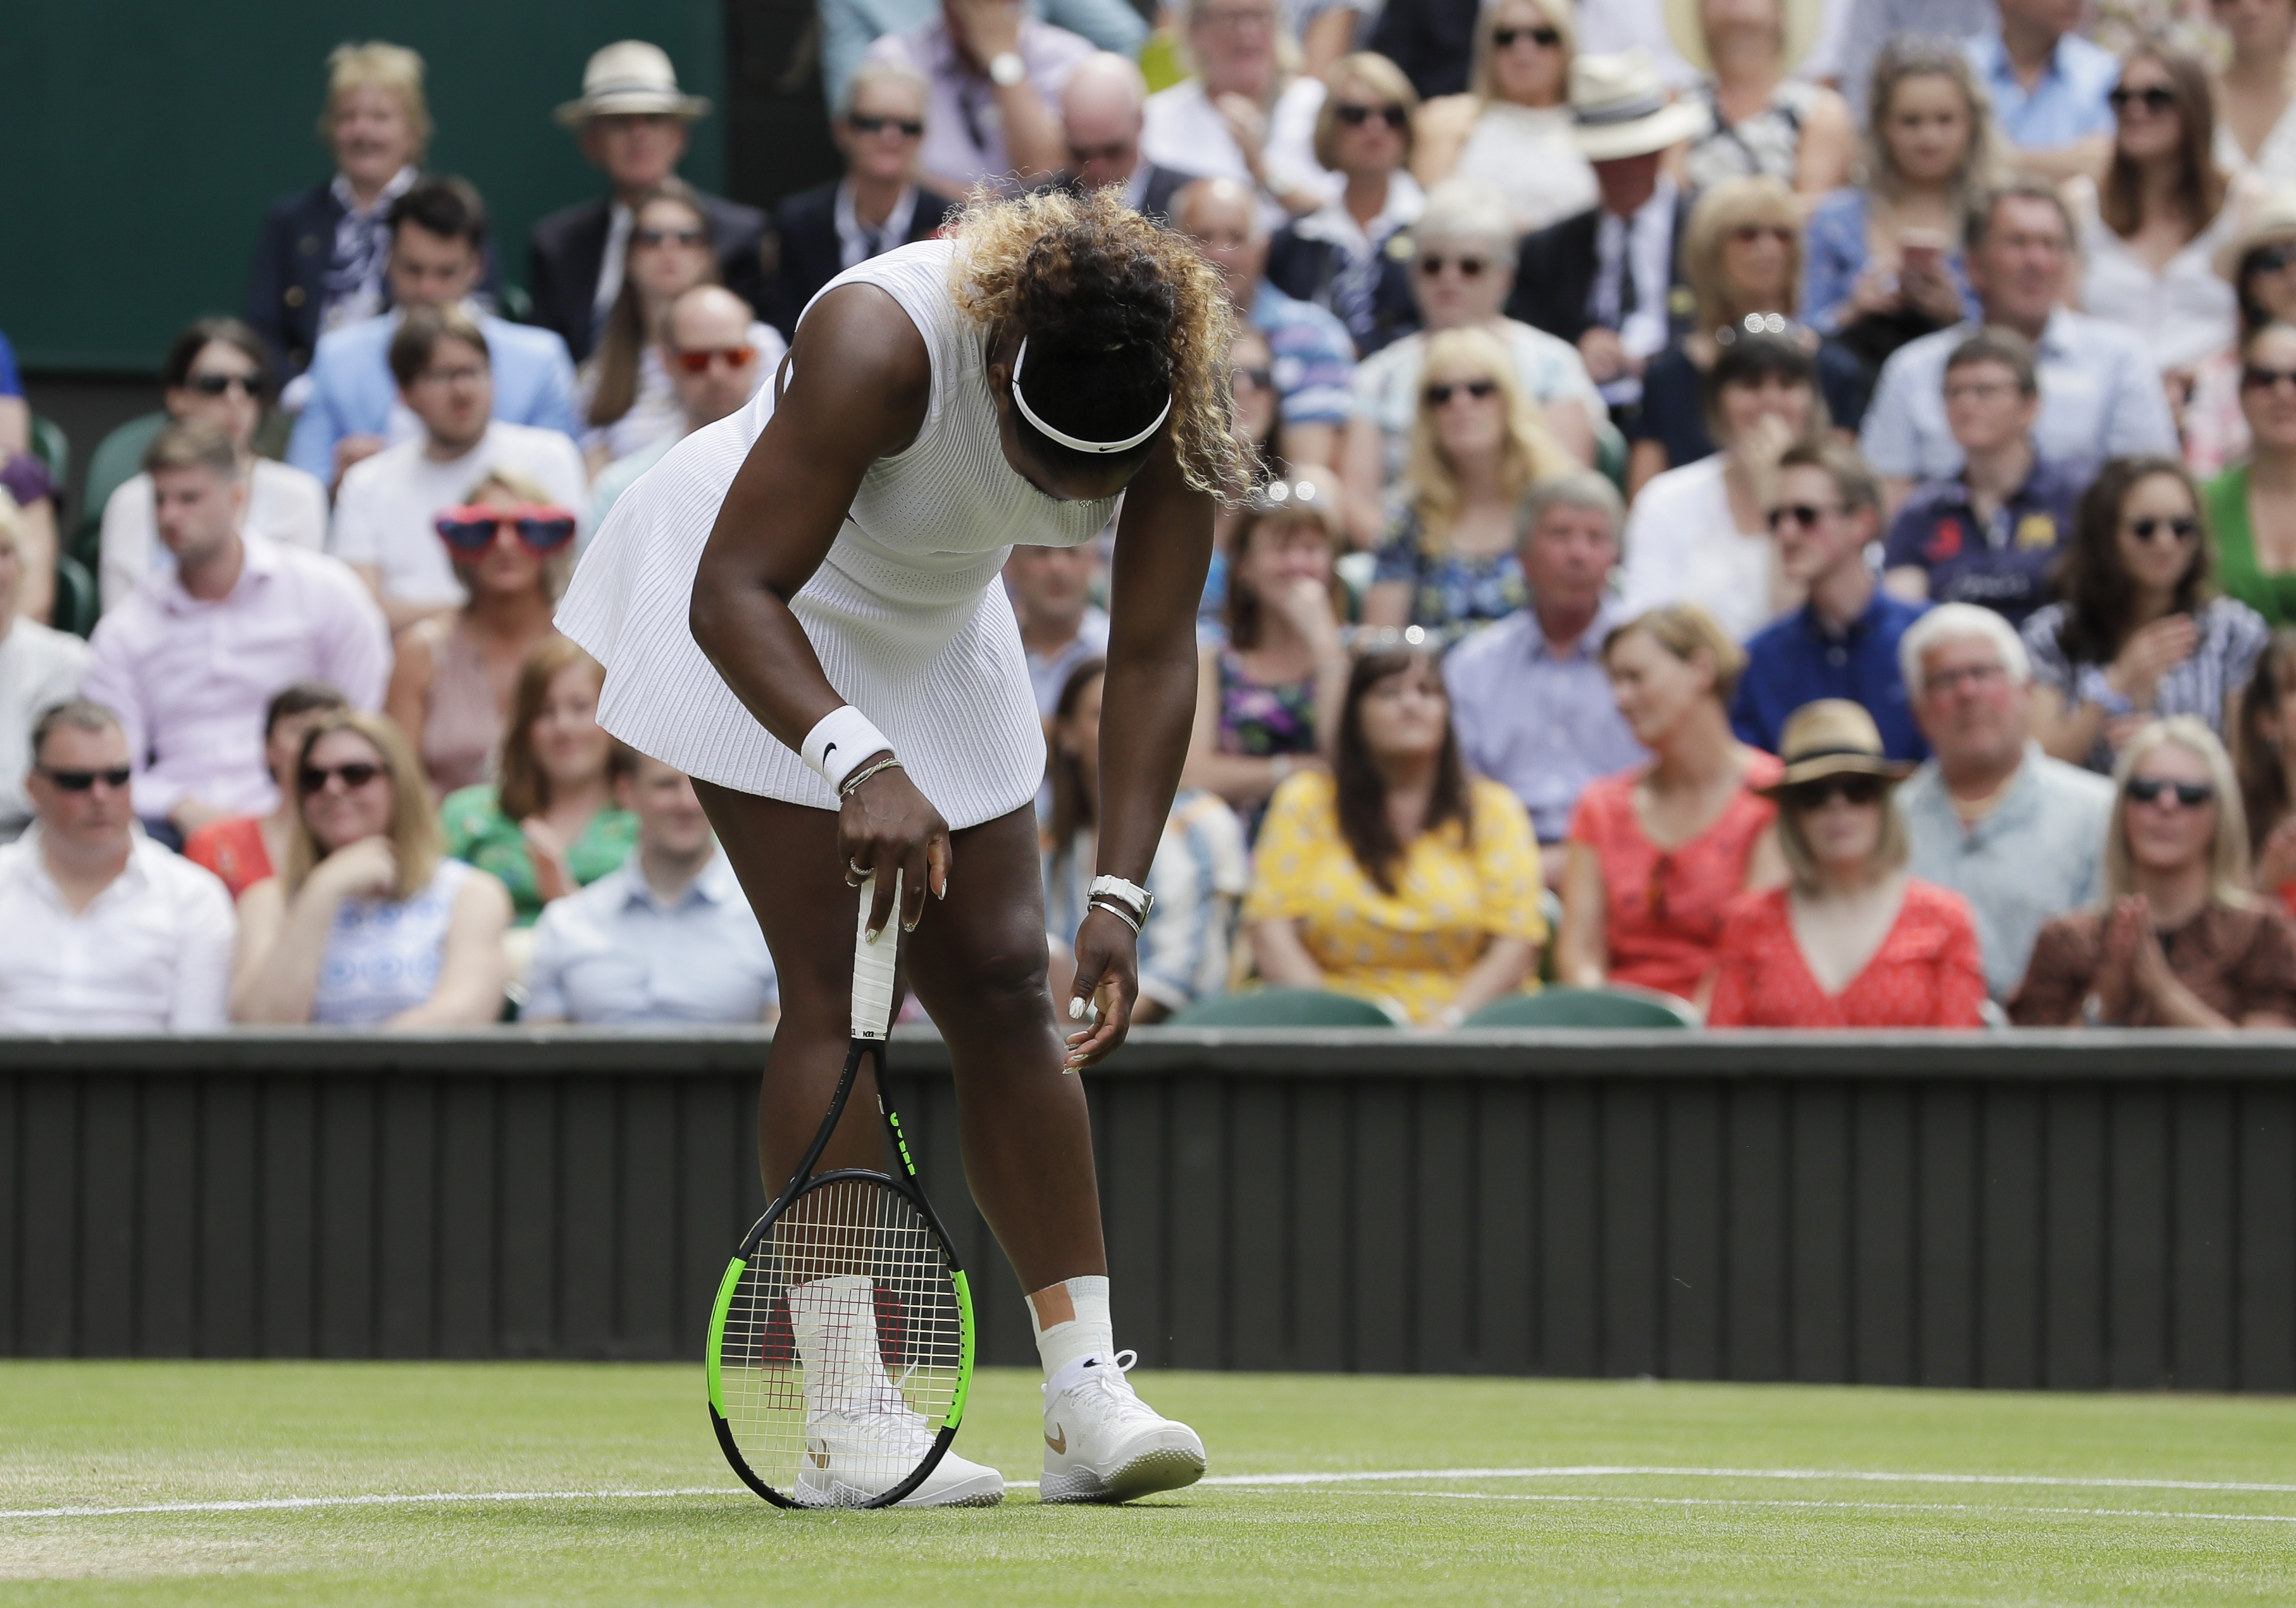 United States' Serena Williams is dejected after losing a point during the women's singles final match against Romania's Simona Halep on day twelve of the Wimbledon Tennis Championships in London, Saturday, July 13, 2019.(AP Photo/Kirsty Wigglesworth)